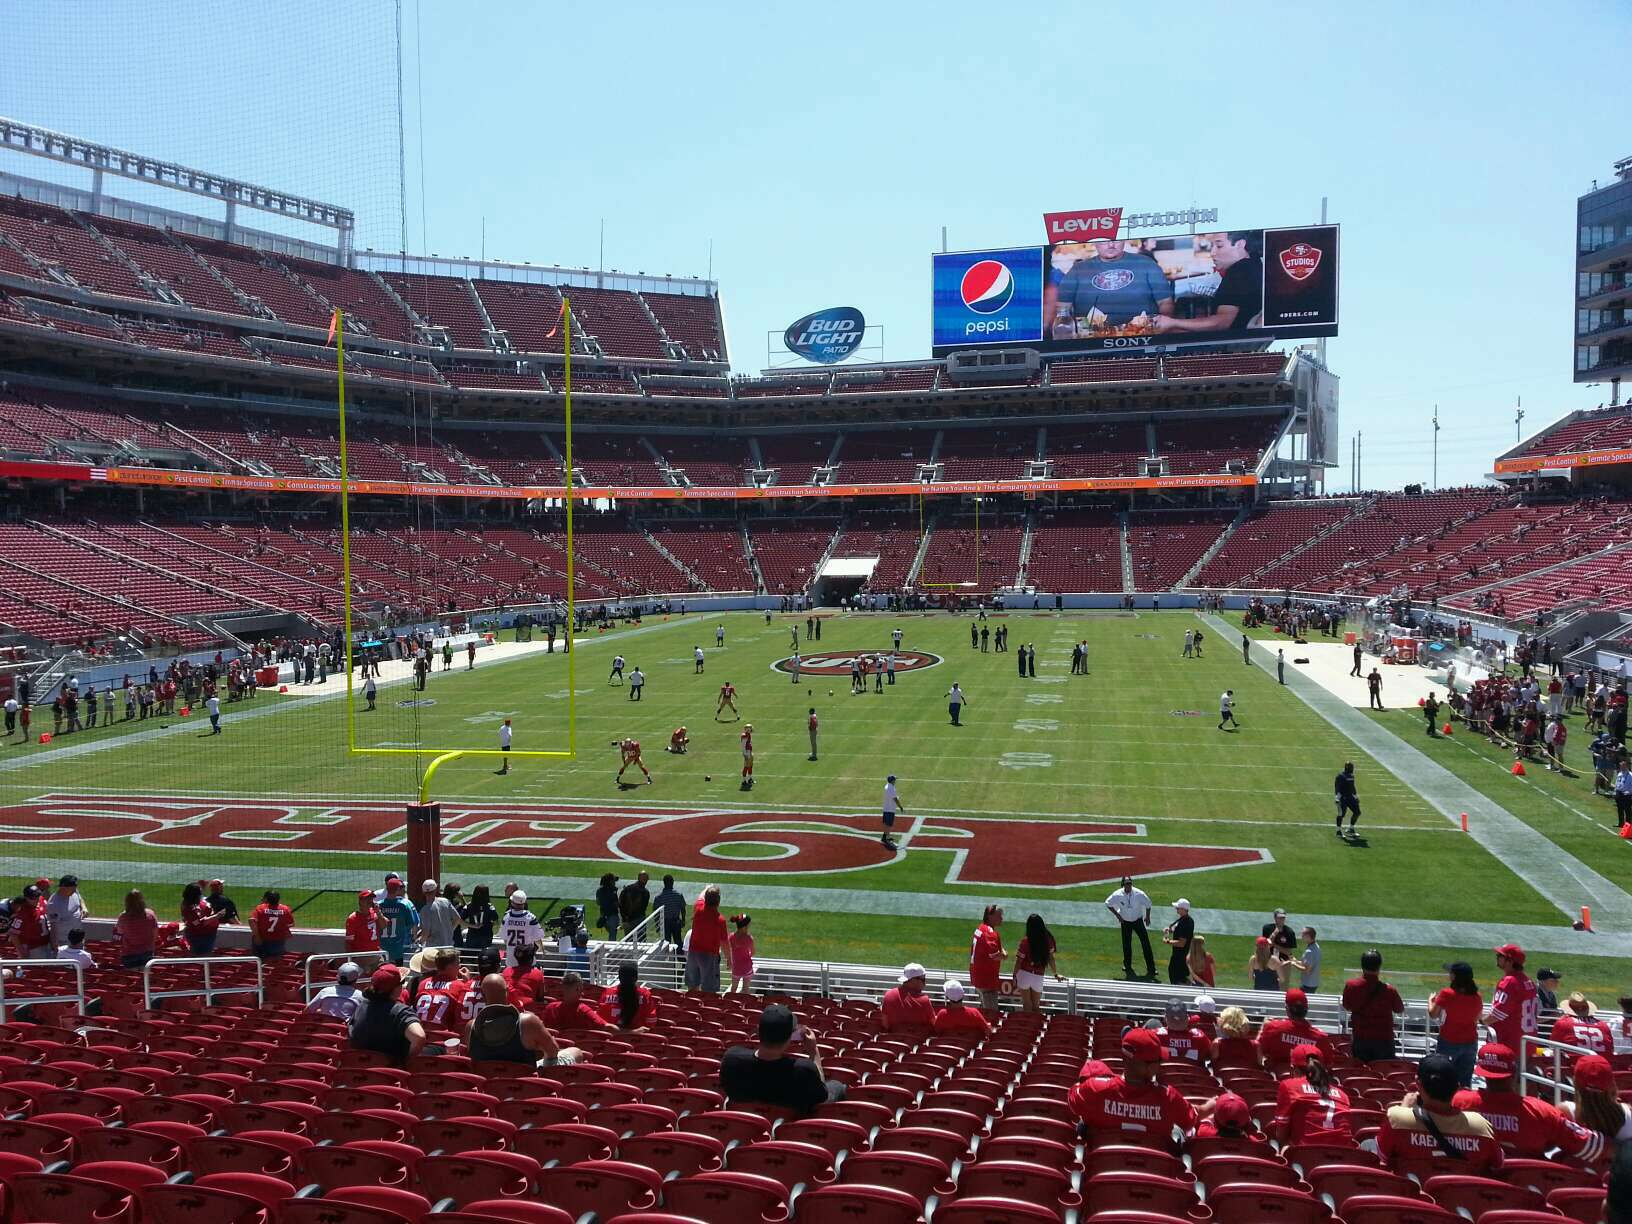 View of the field at Levi's Stadium, home of the San Francisco 49ers.